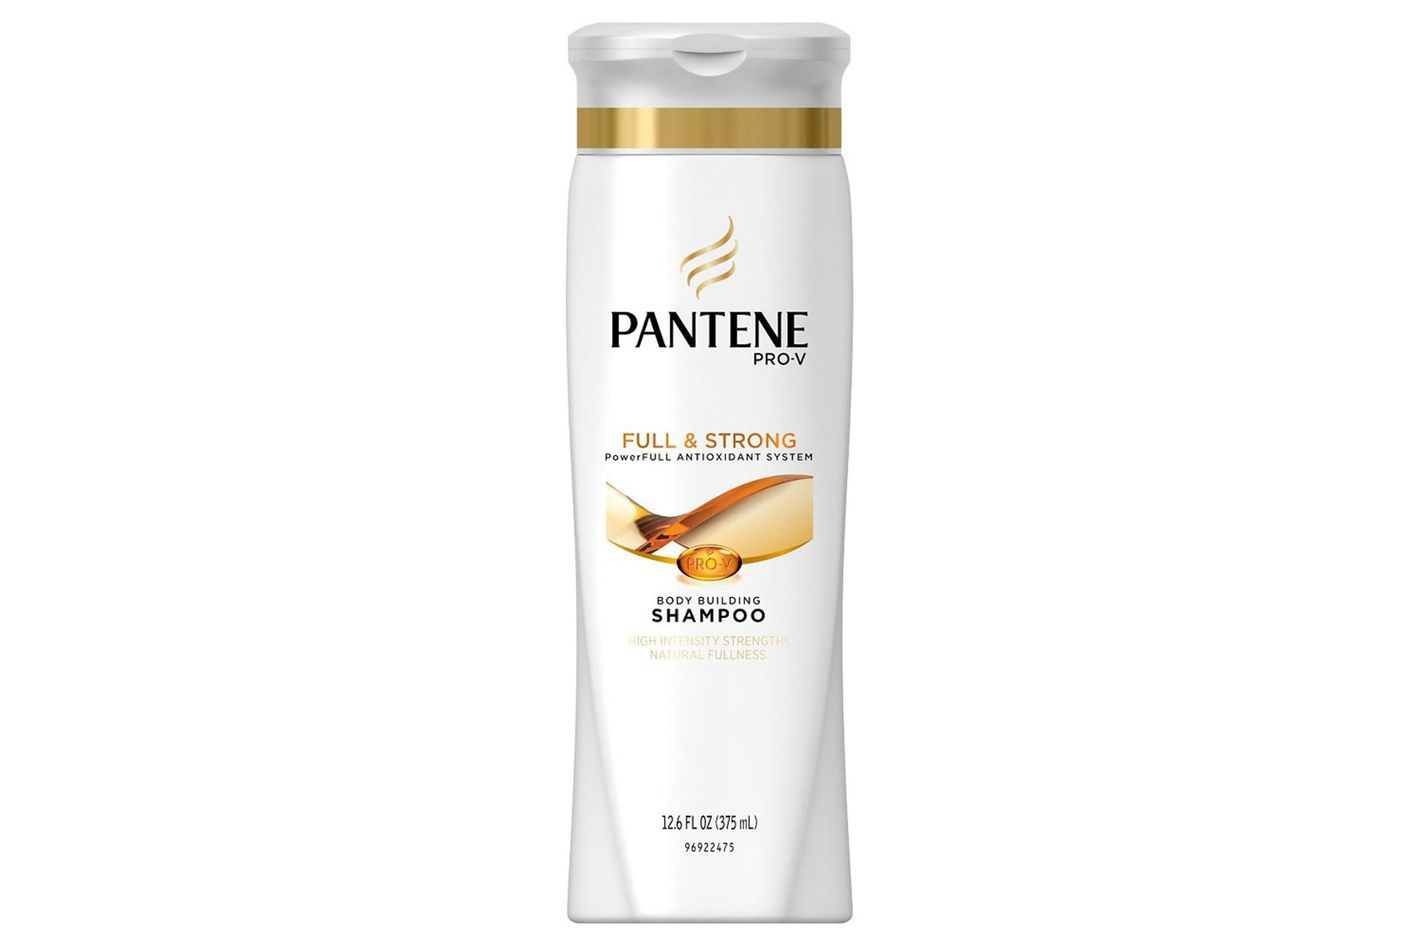 Pantene Pro-V Full & Strong Shampoo and Conditioner